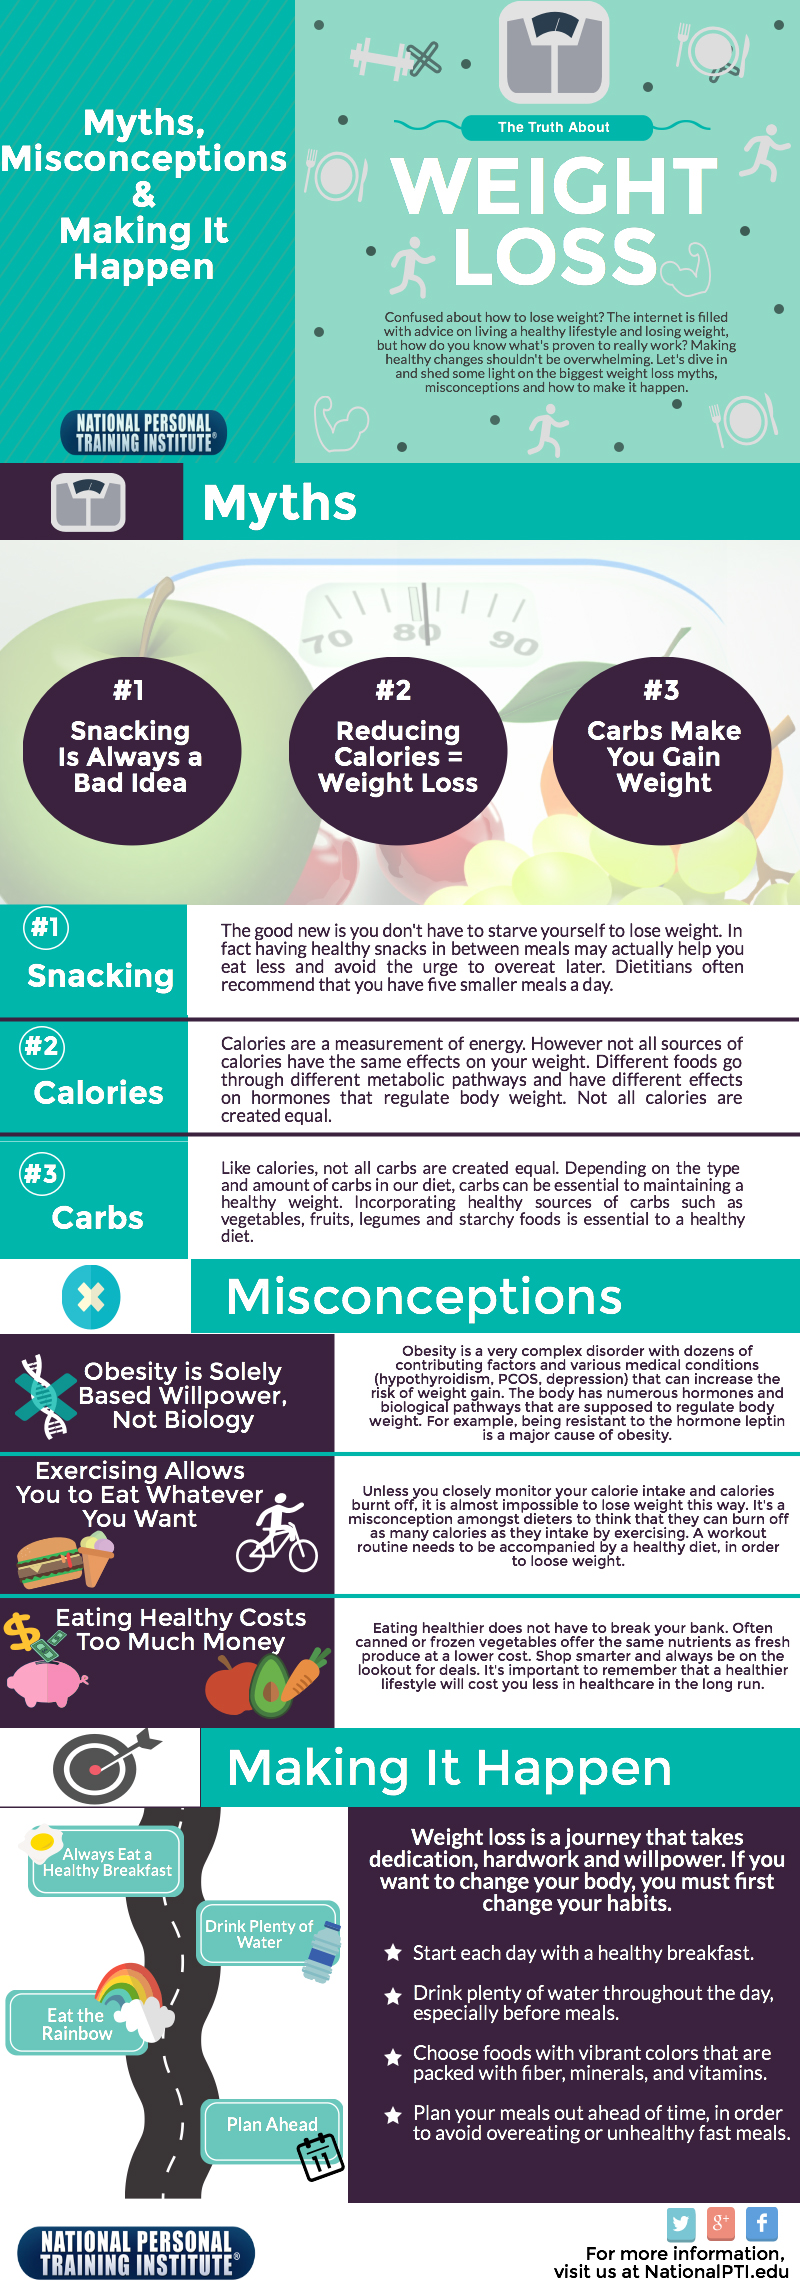 Weight Loss Tips & Myths